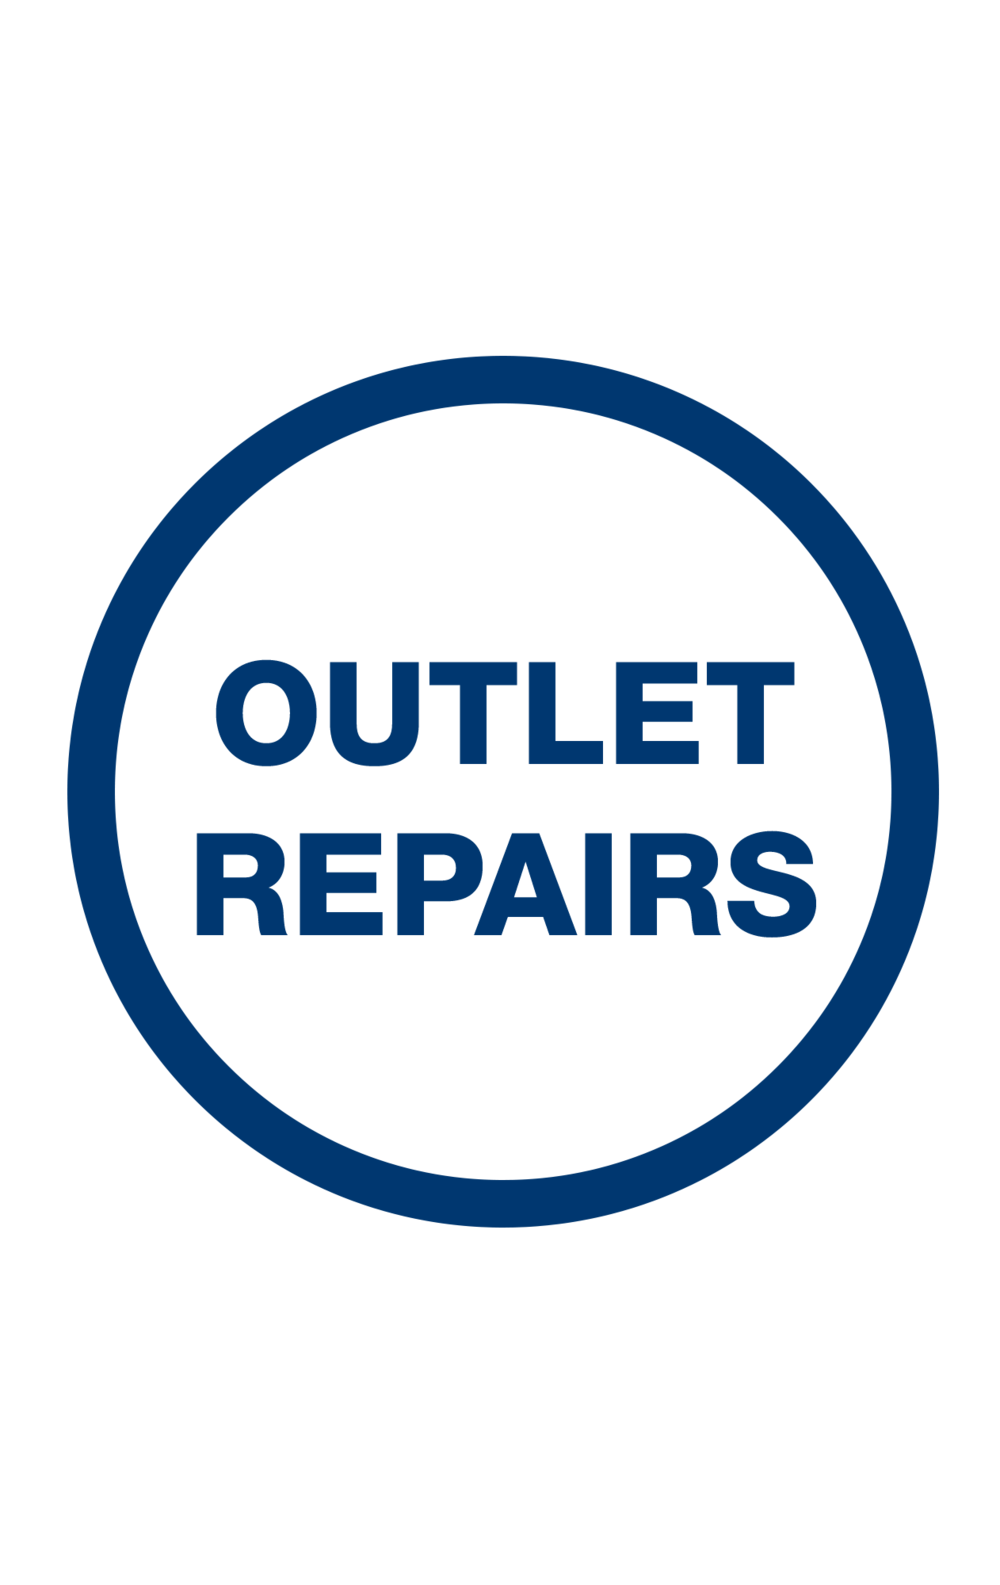 outlet-repairs-2.png